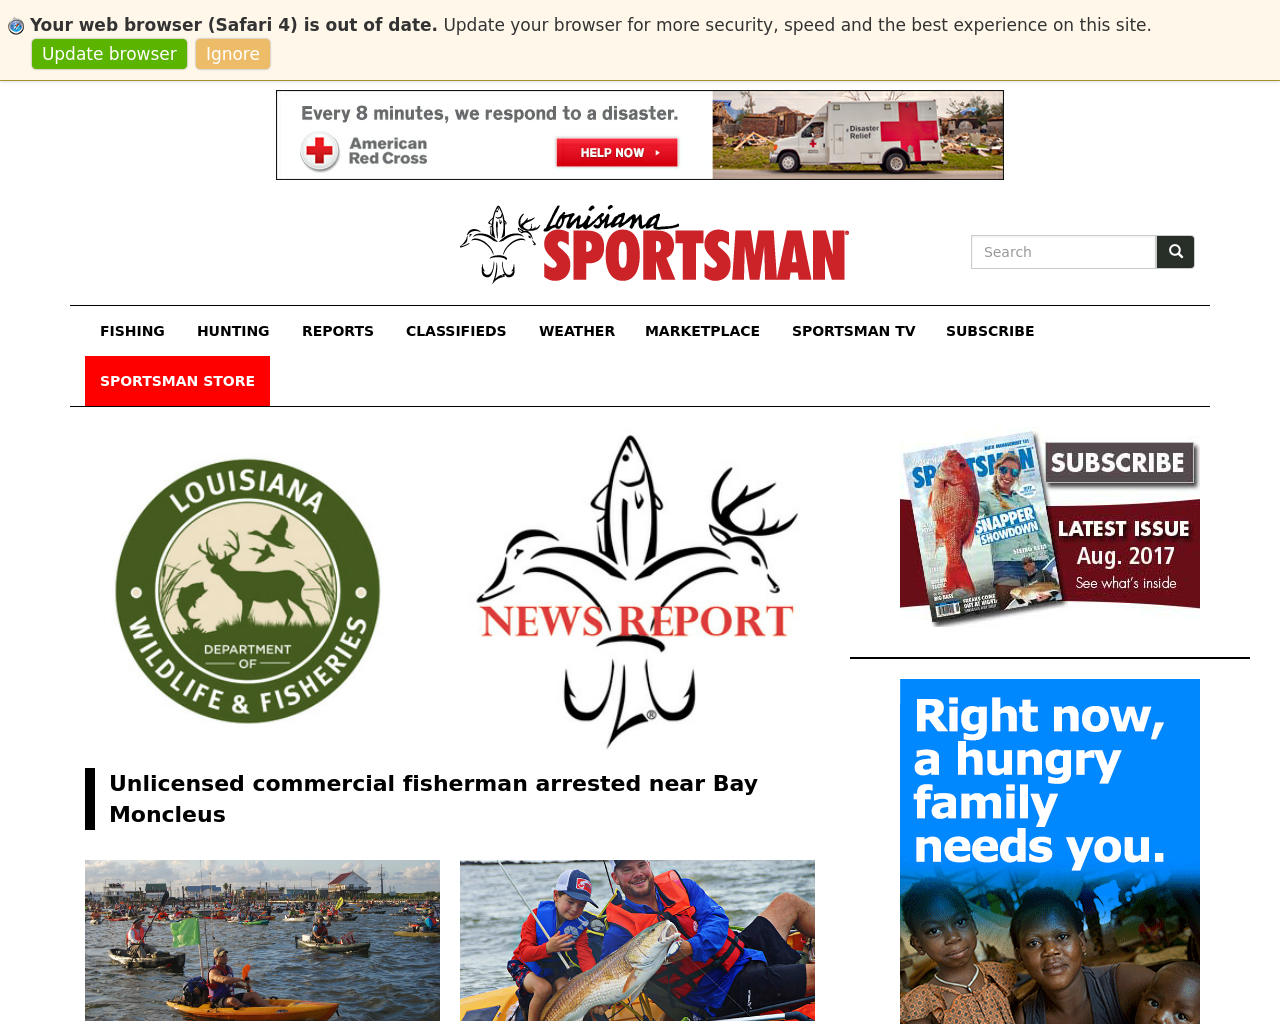 Louisiana-Sportsman-Advertising-Reviews-Pricing